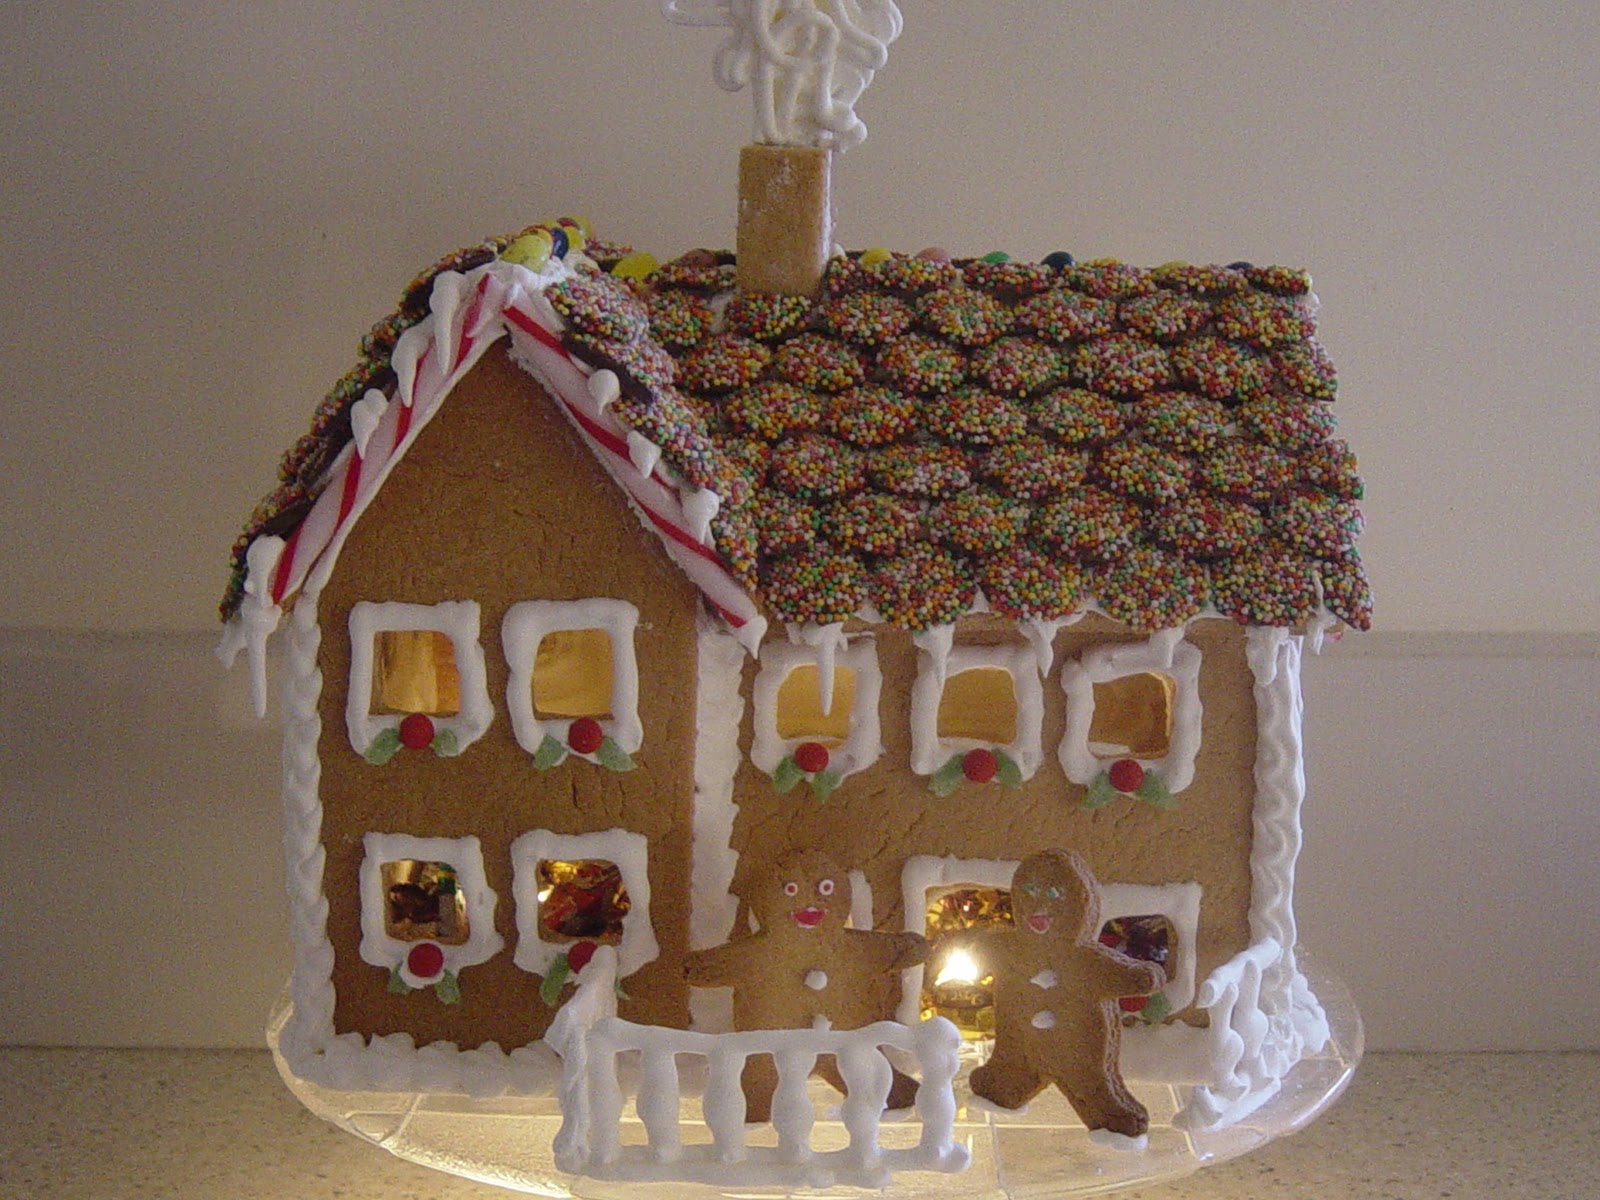 howtocookthat cakes dessert chocolate gingerbread house recipe howtocookthat cakes. Black Bedroom Furniture Sets. Home Design Ideas